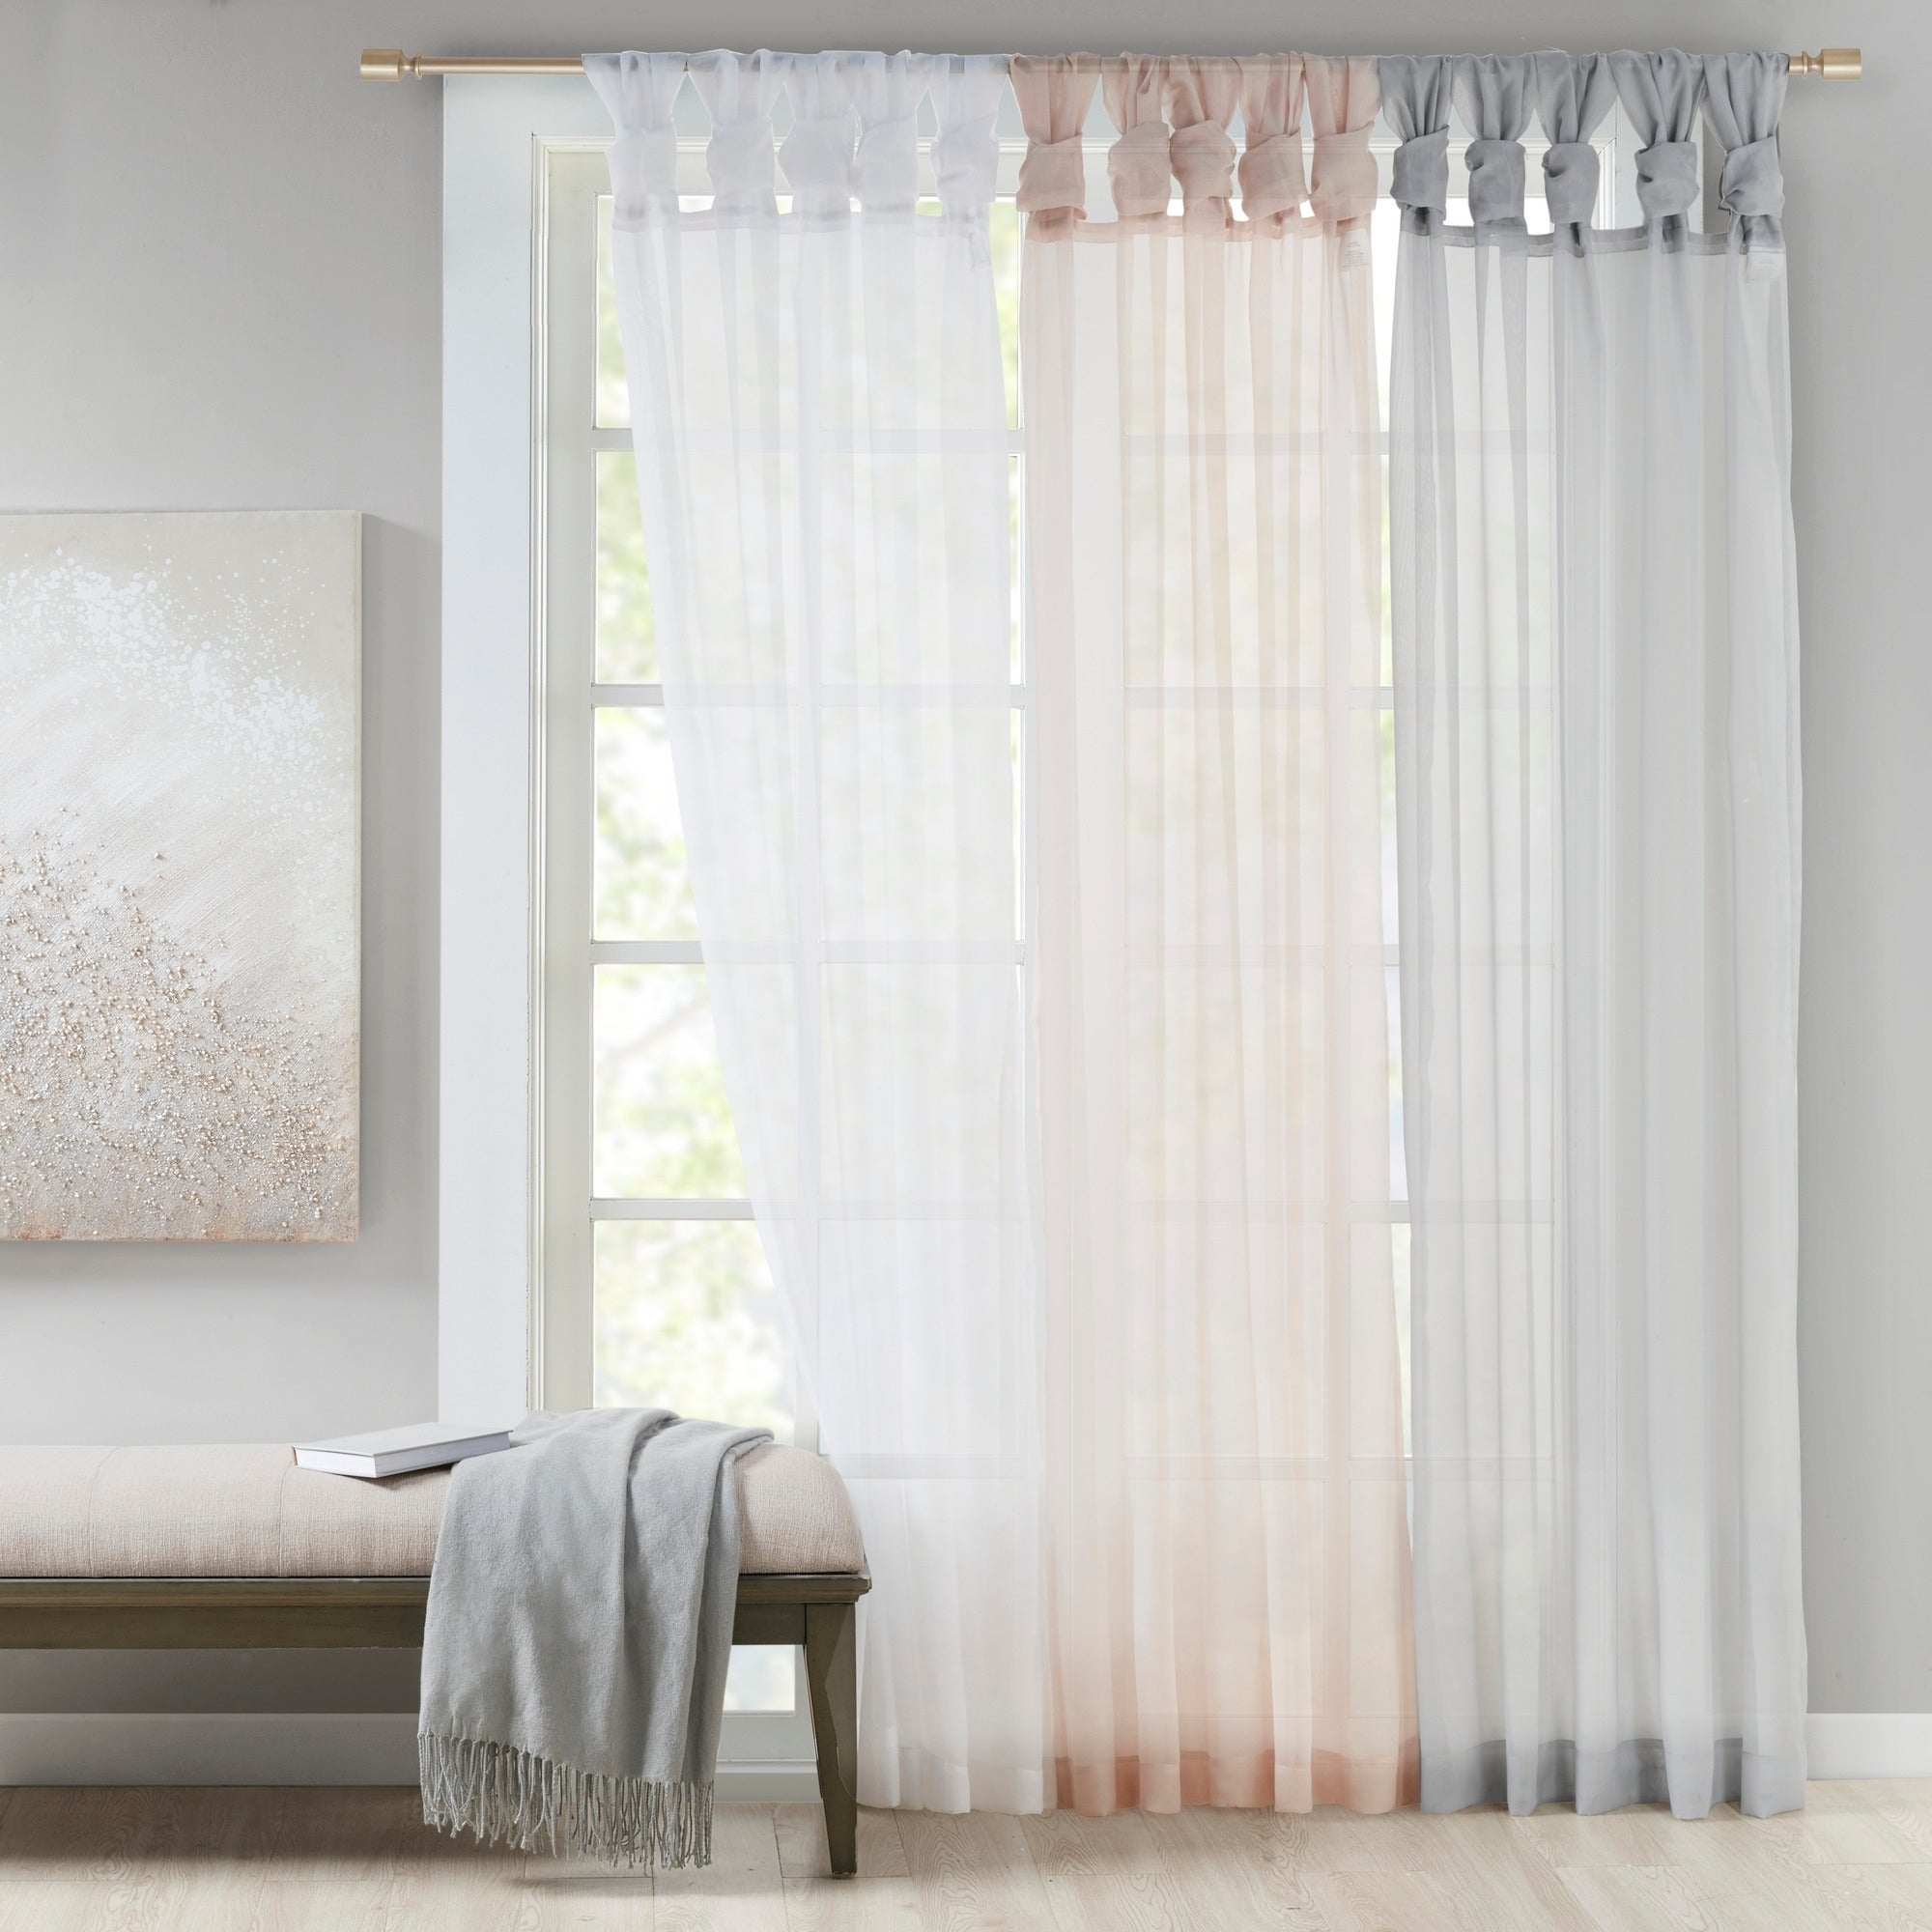 Madison Park Elowen White Twist Tab Voile Sheer Curtain Panel Pair In Light Grey 50 W X 84 L As Is Item Overstock 30699462